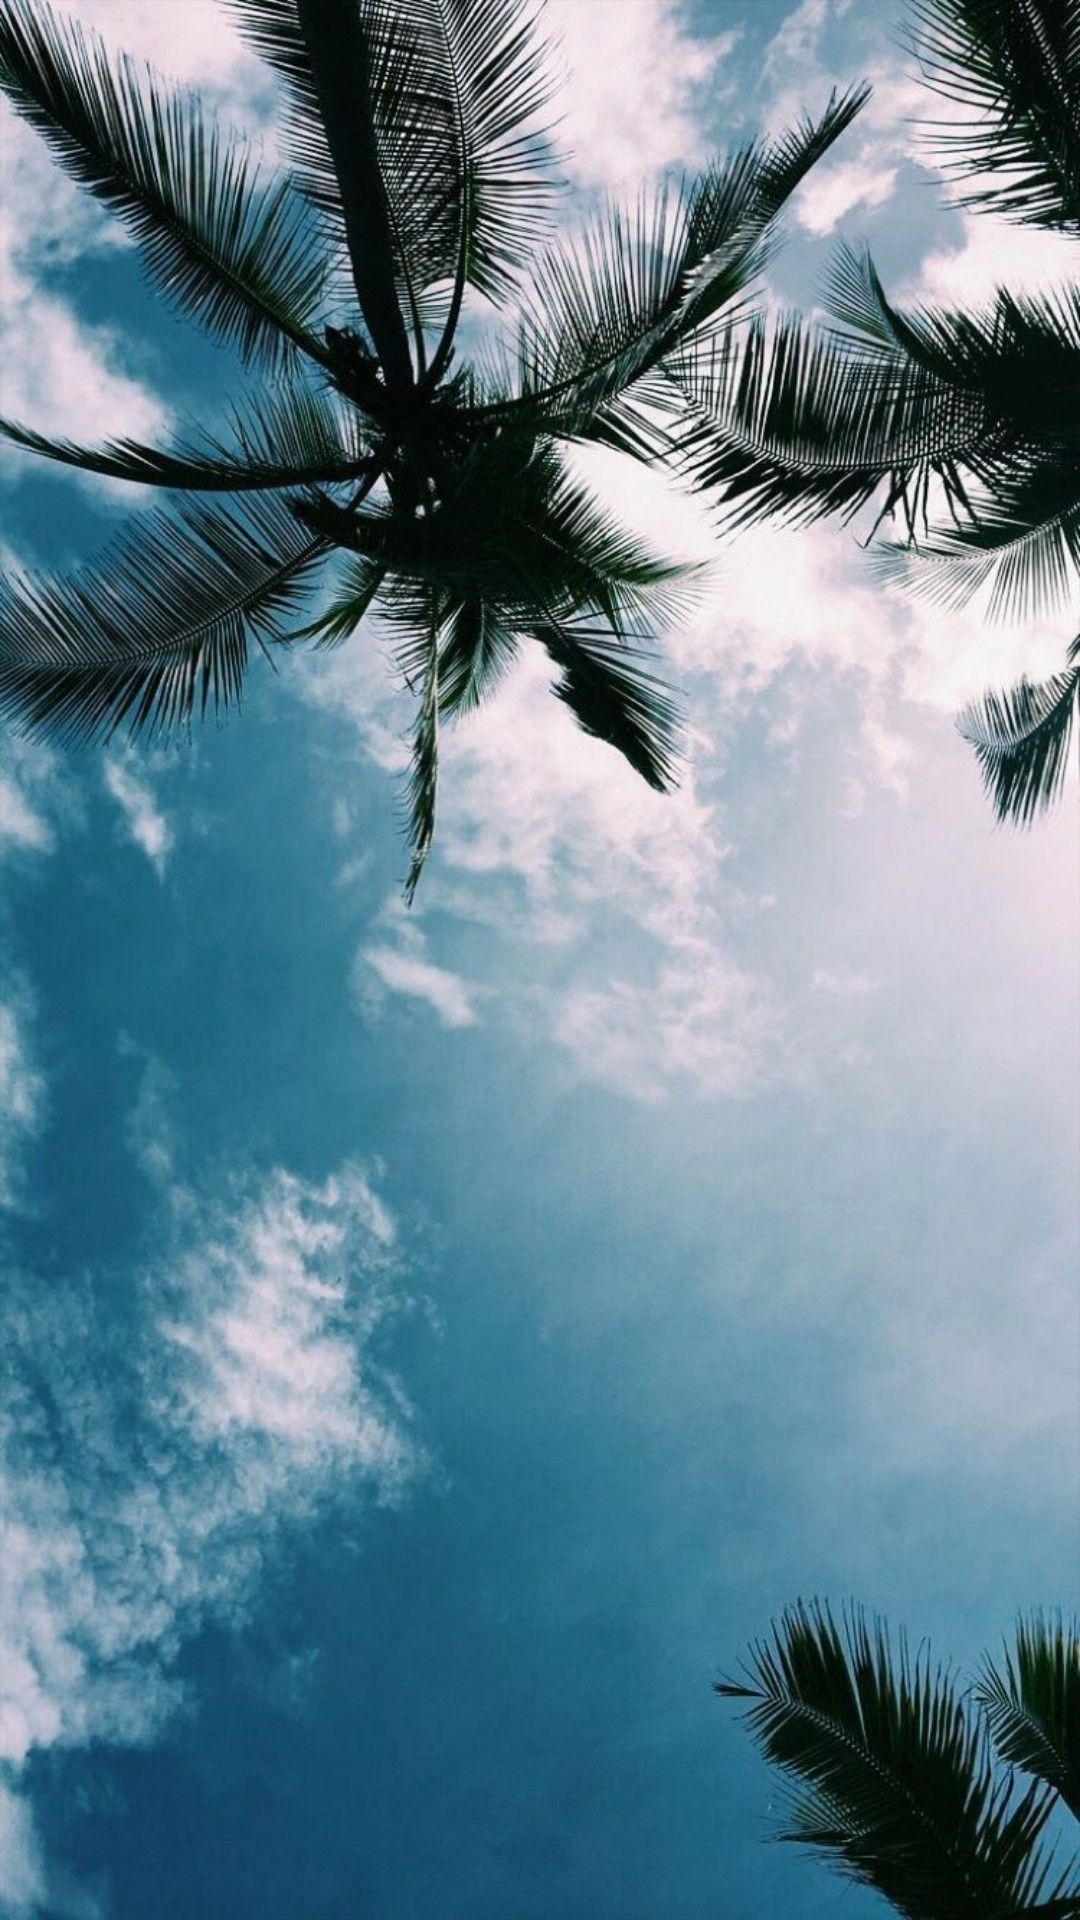 Sky Tree Nature Blue Daytime Palm Tree Photography Wallpaper Blue Wallpaper Iphone View Wallpaper Wallpaper palm trees on blue sky